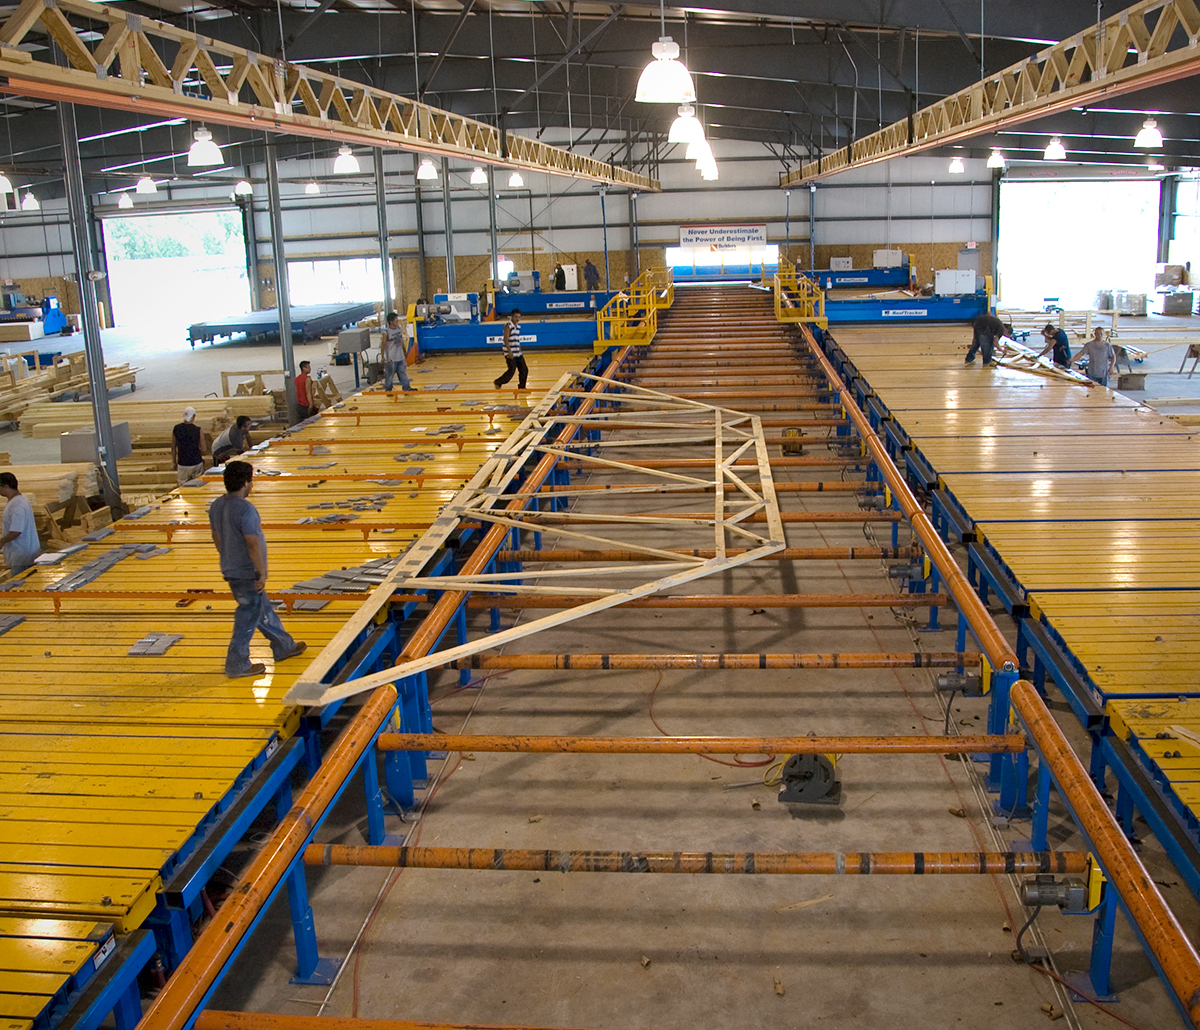 MiTek Stand Alone Conveyor Automated Solutions - Team working on stand-alone conveyor